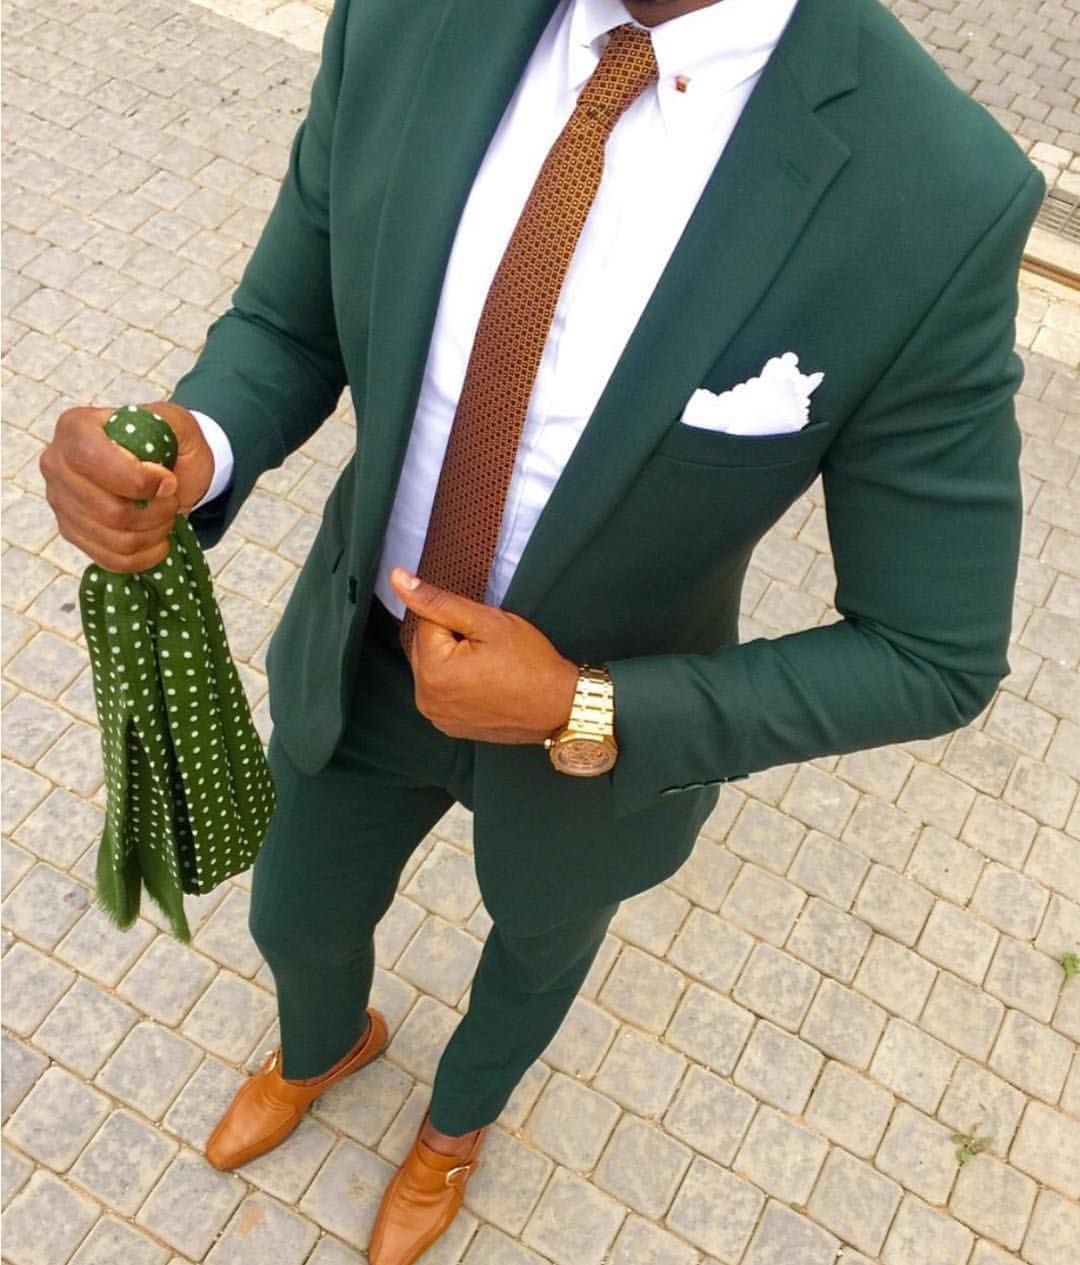 1,158 Likes, 26 Comments - Mens Fashion & Suits (@suitsharks) on Instagram